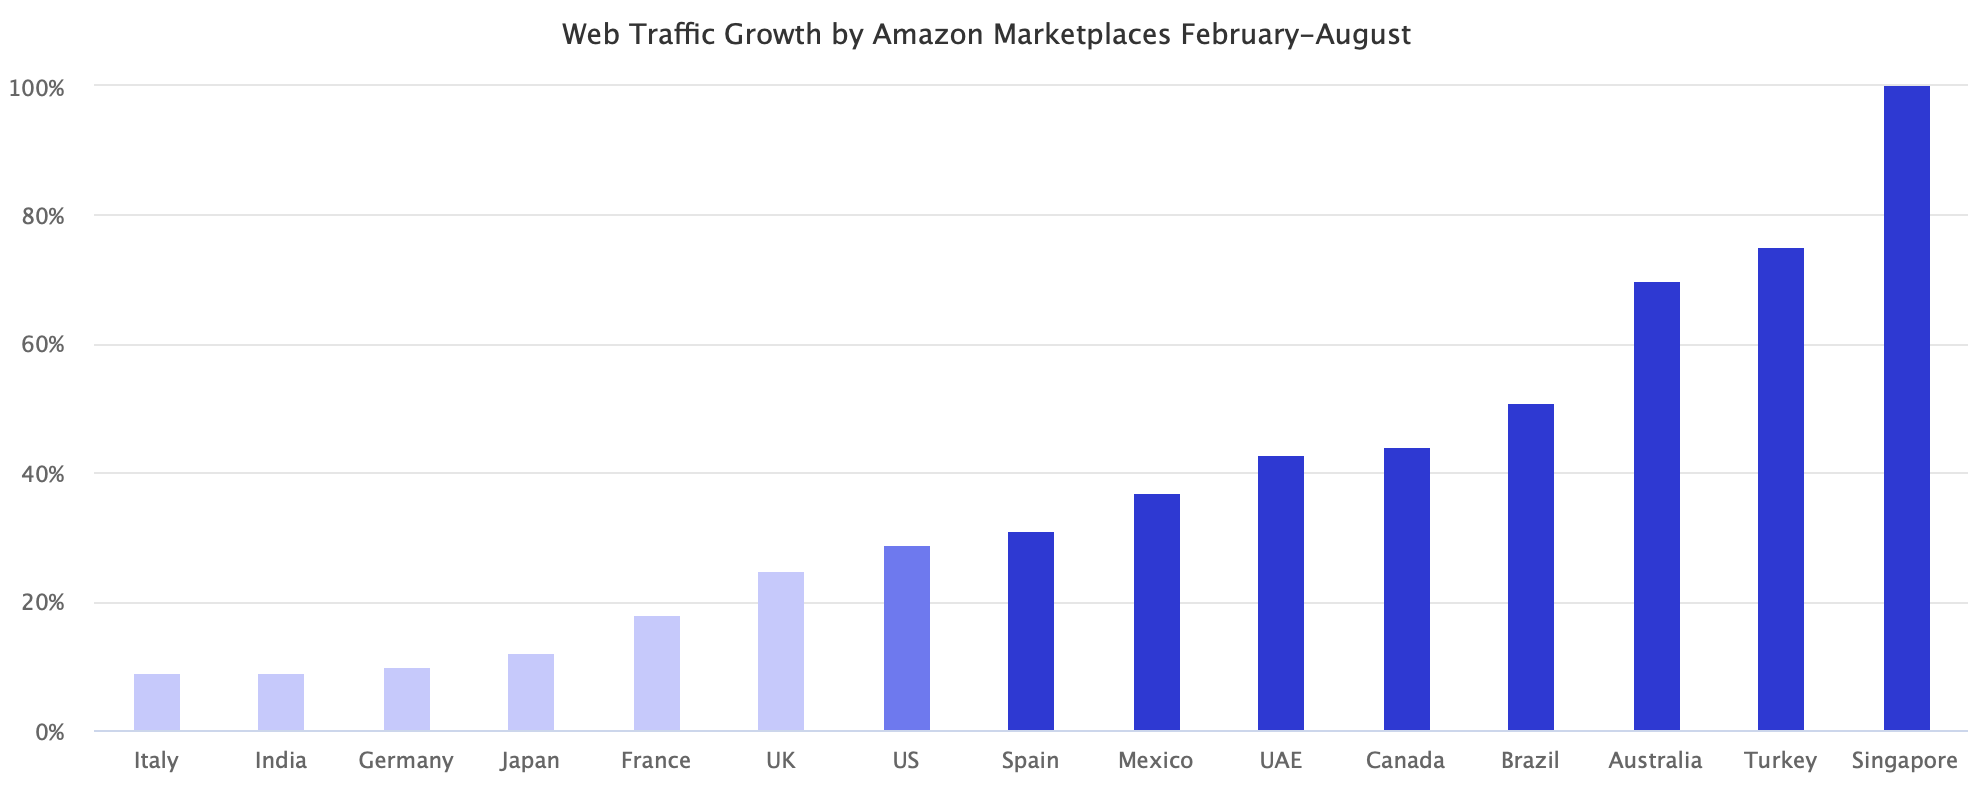 Web Traffic Growth by Amazon Marketplaces February-August